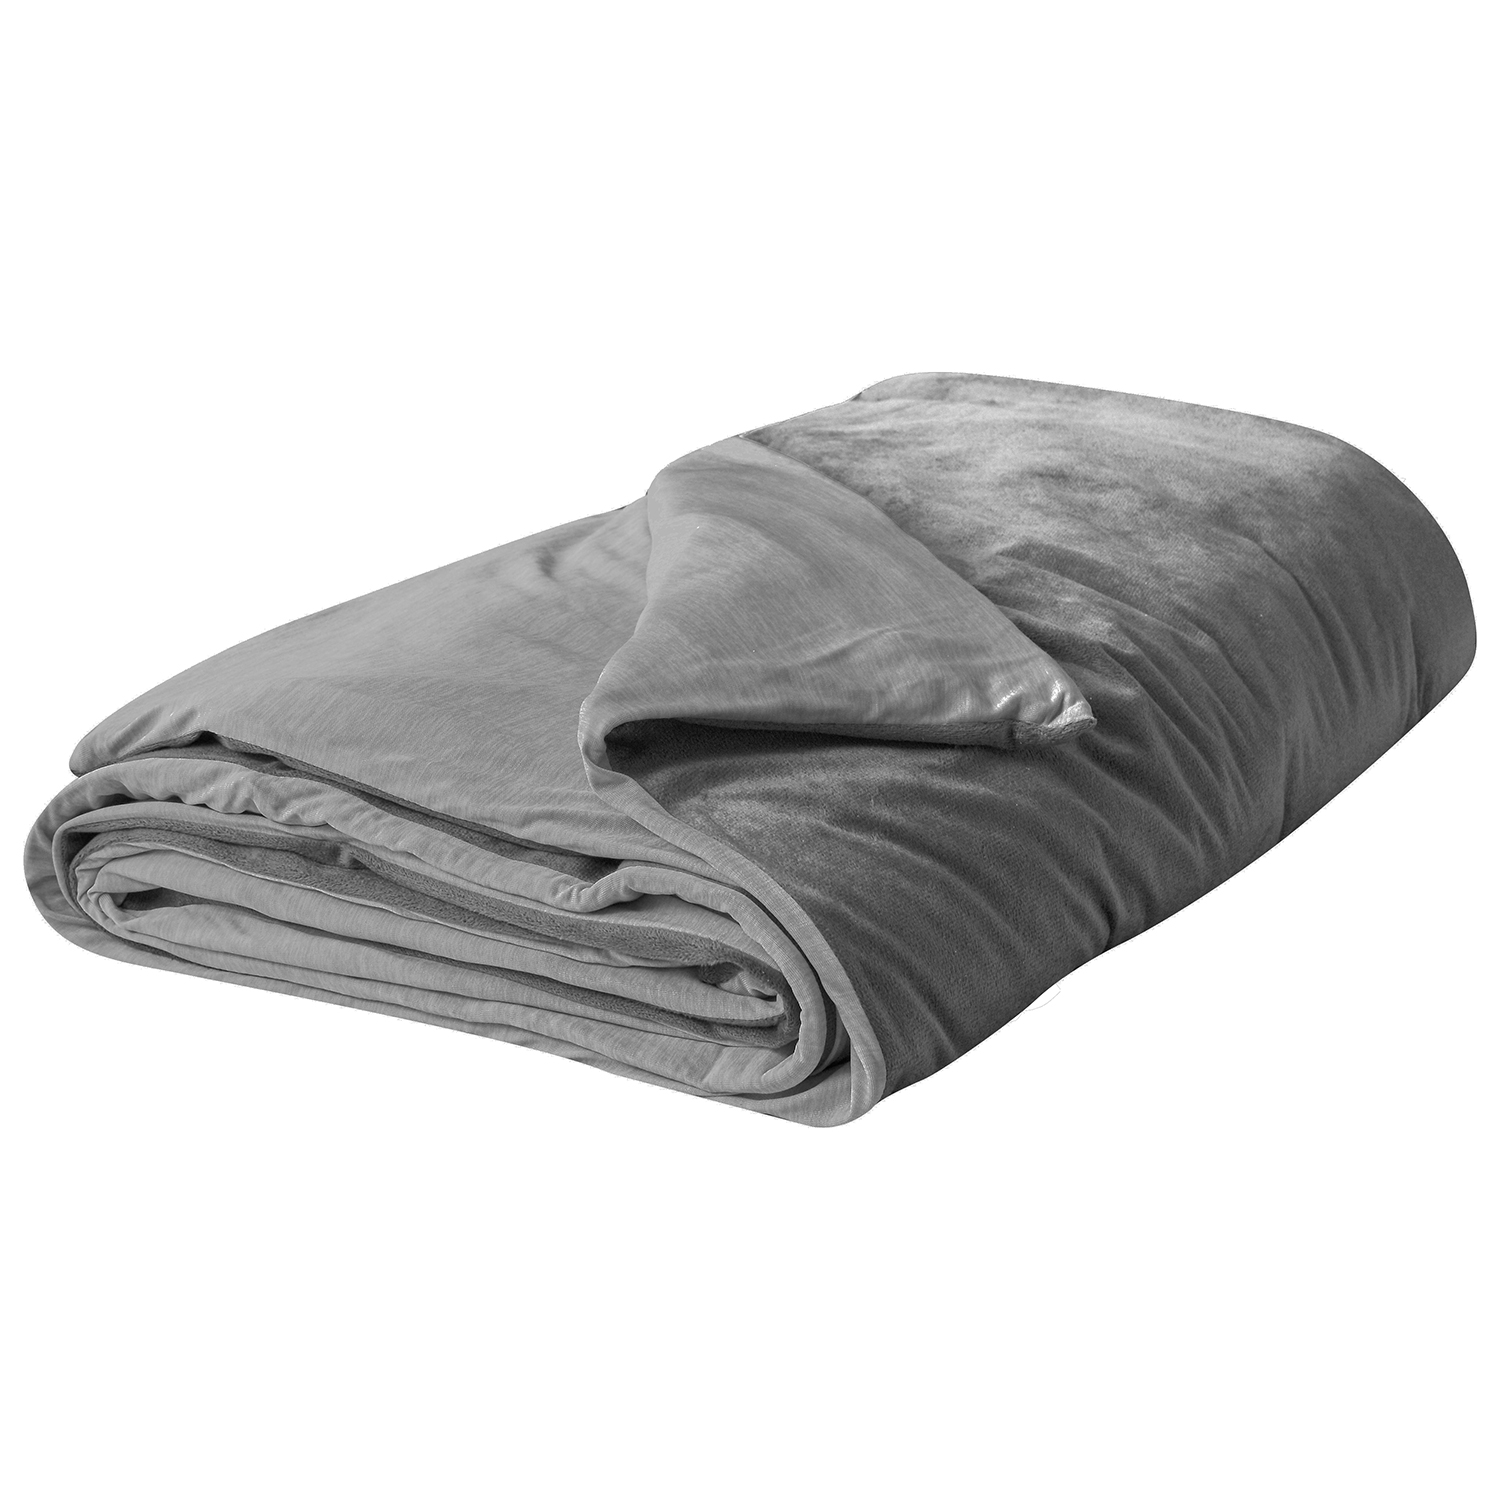 Balancing Weighted Blanket